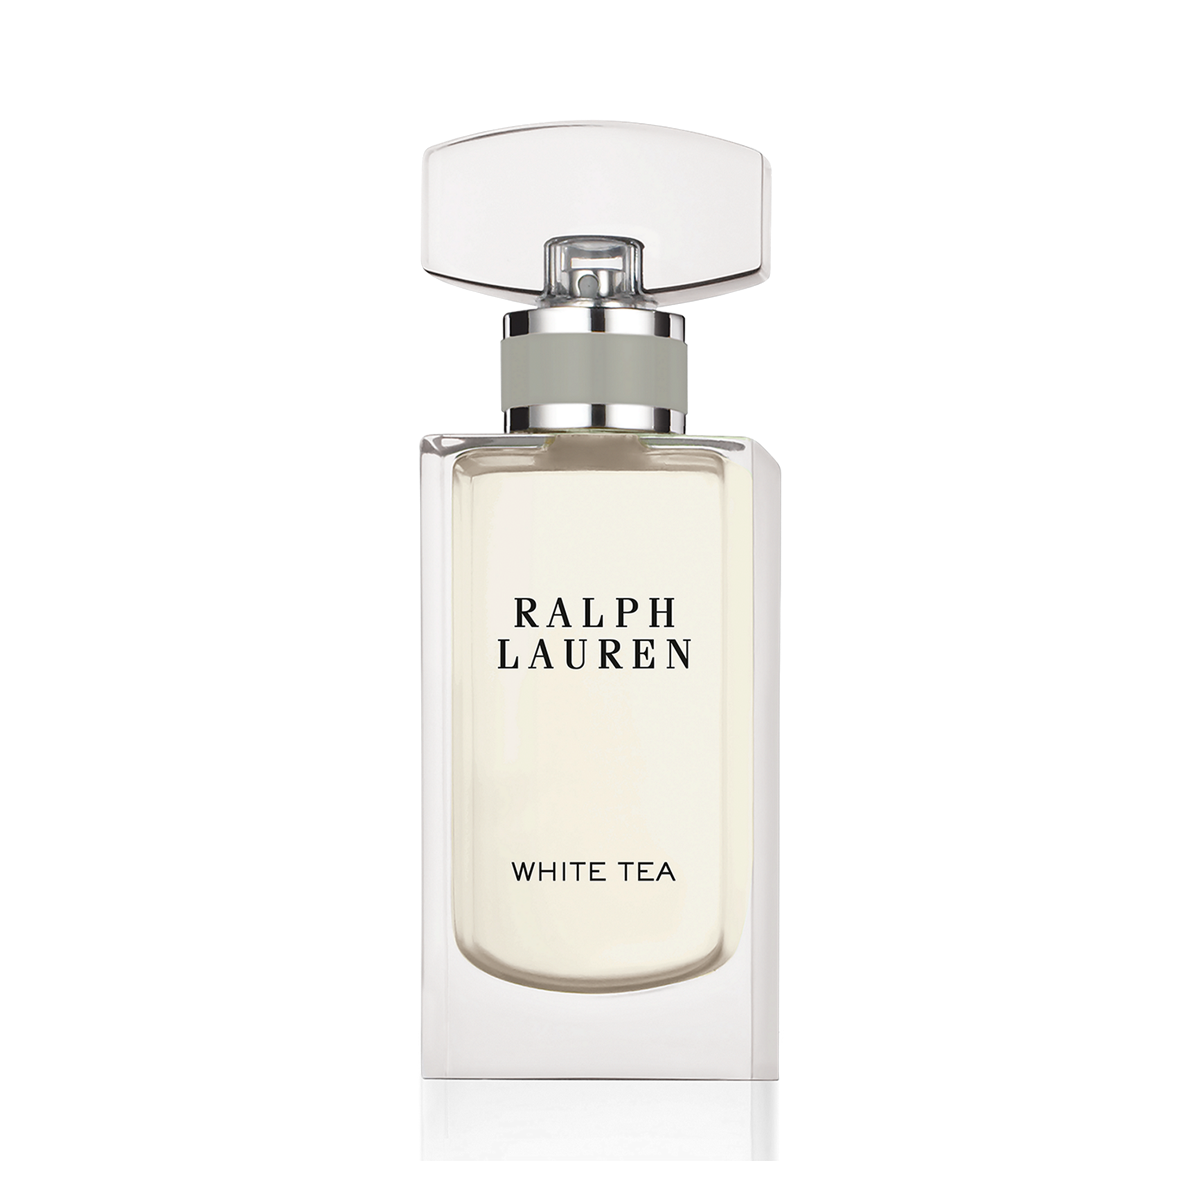 04ddad608a White Tea 100 ml. EDP   All Fragrance Scents for Her   Ralph Lauren